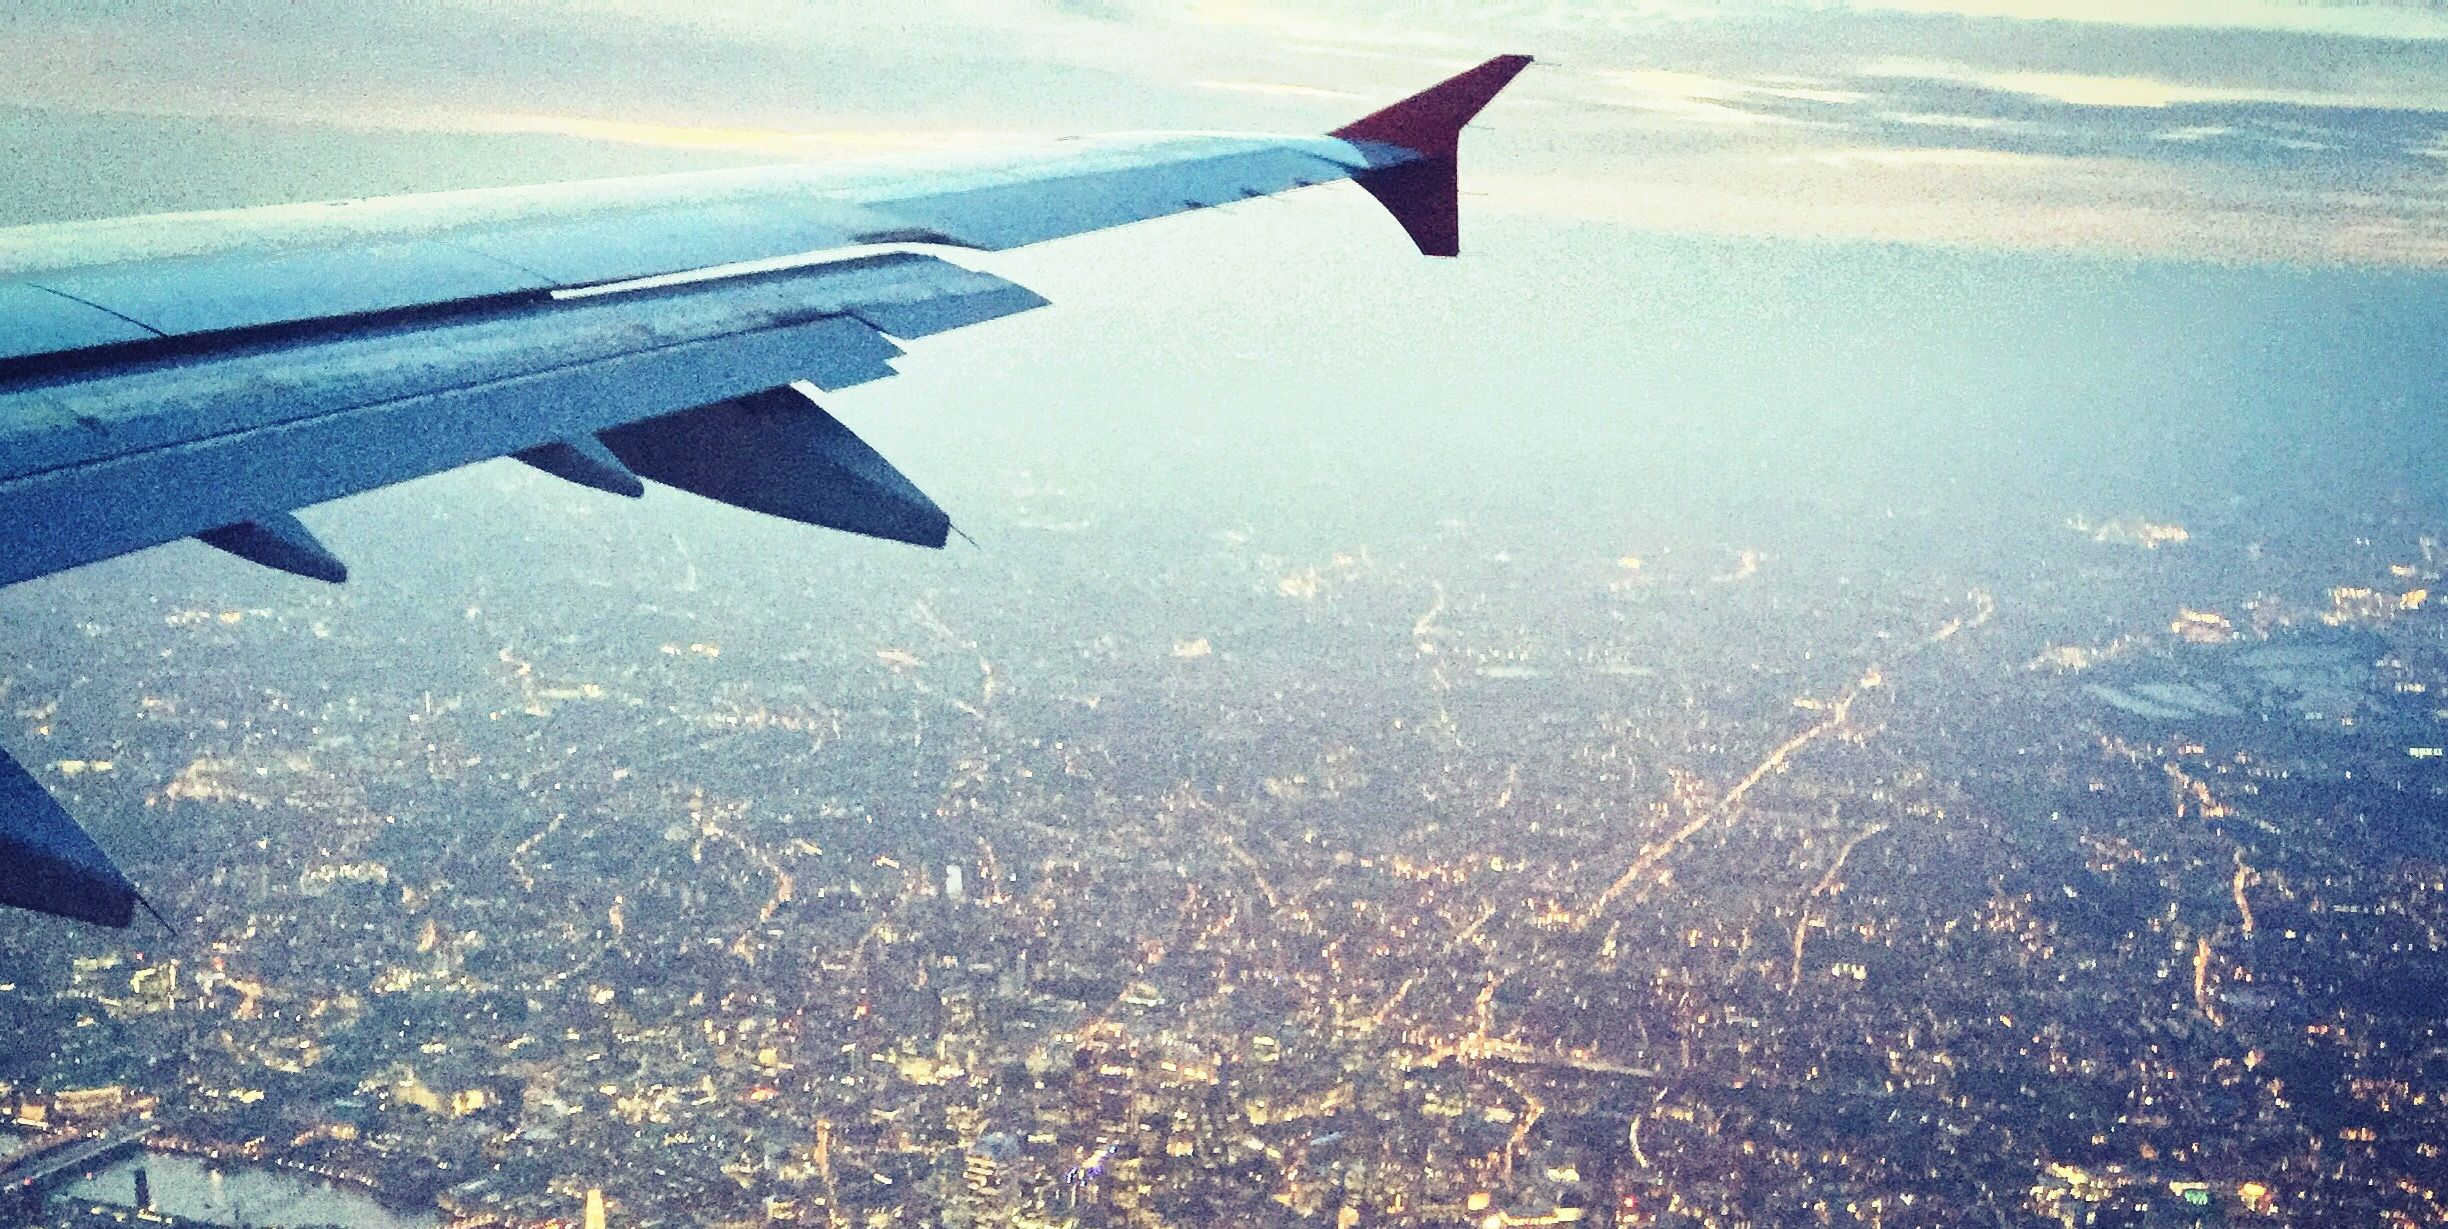 The incredible view passengers on a plane never see